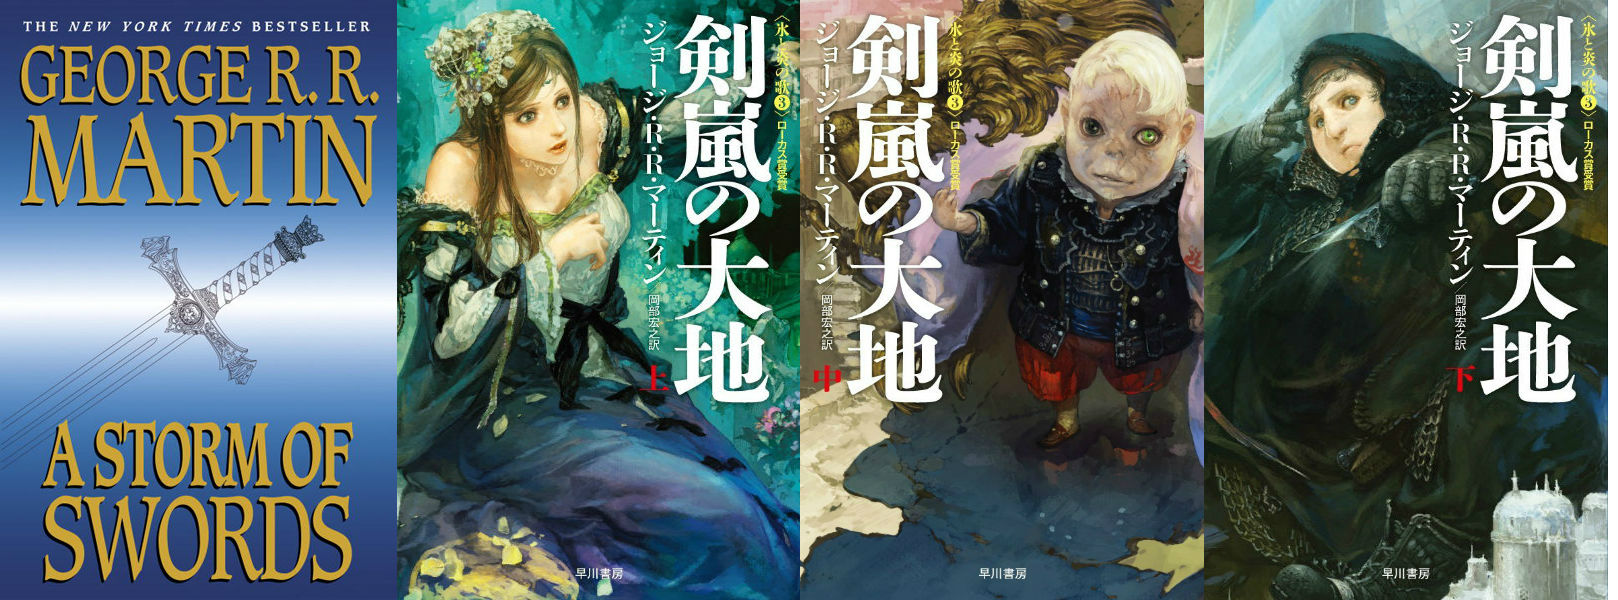 Storm of swords japanese covers